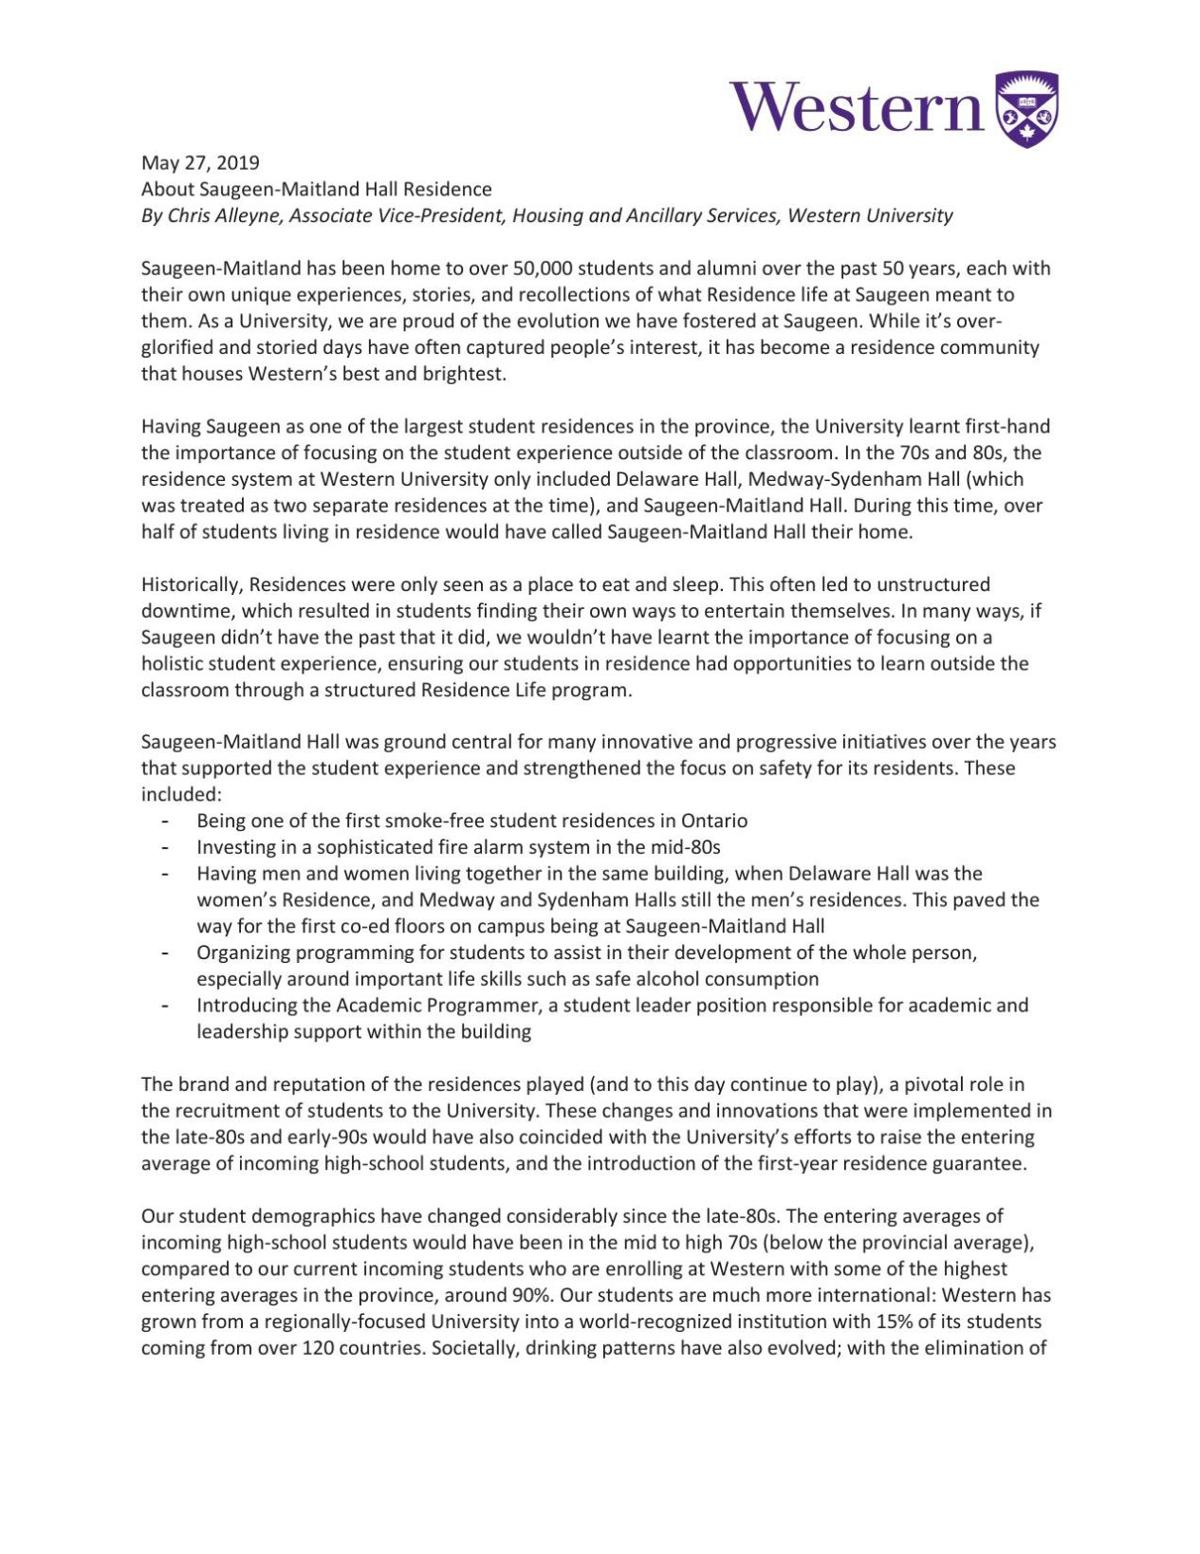 Housing's full statement